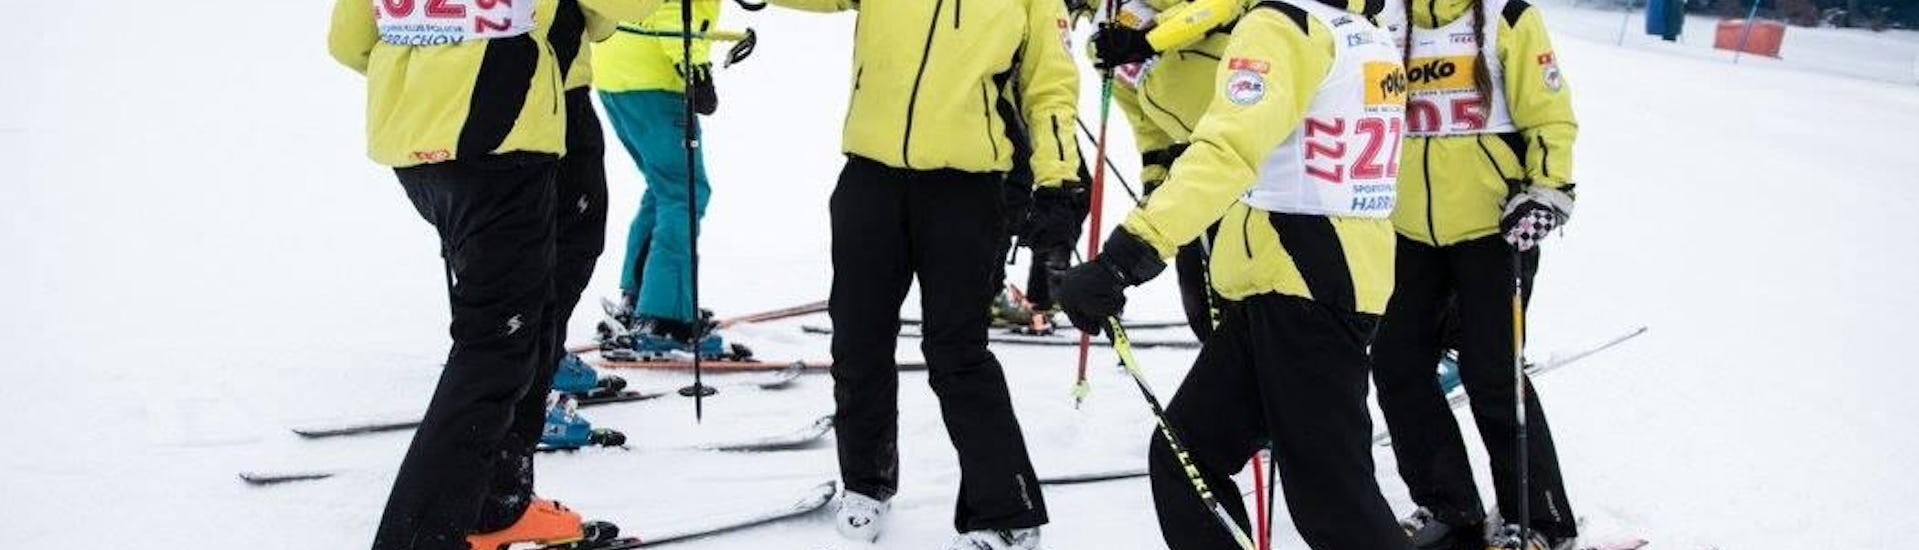 Ski Instructor Private for Adults - Incl. Equipment